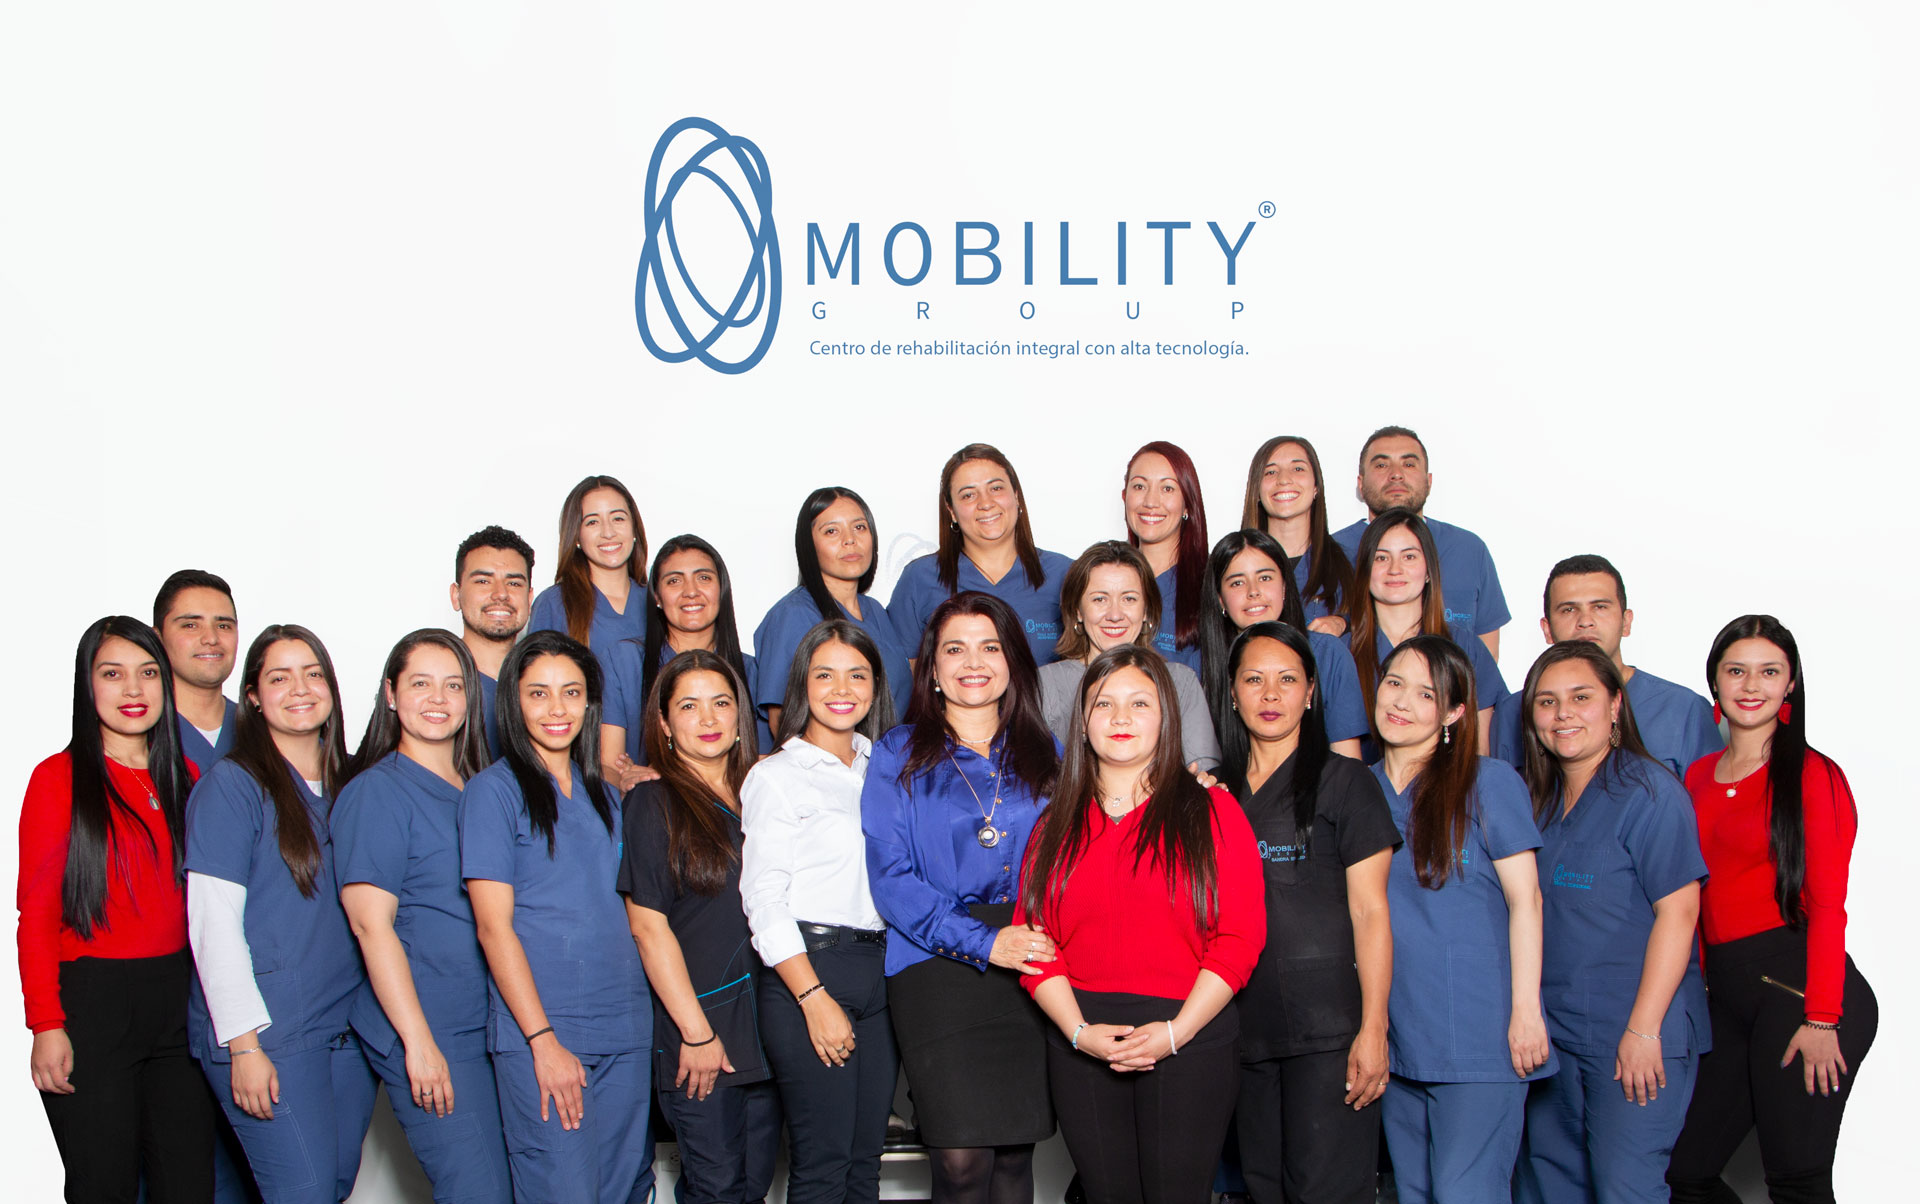 equipo-mobility